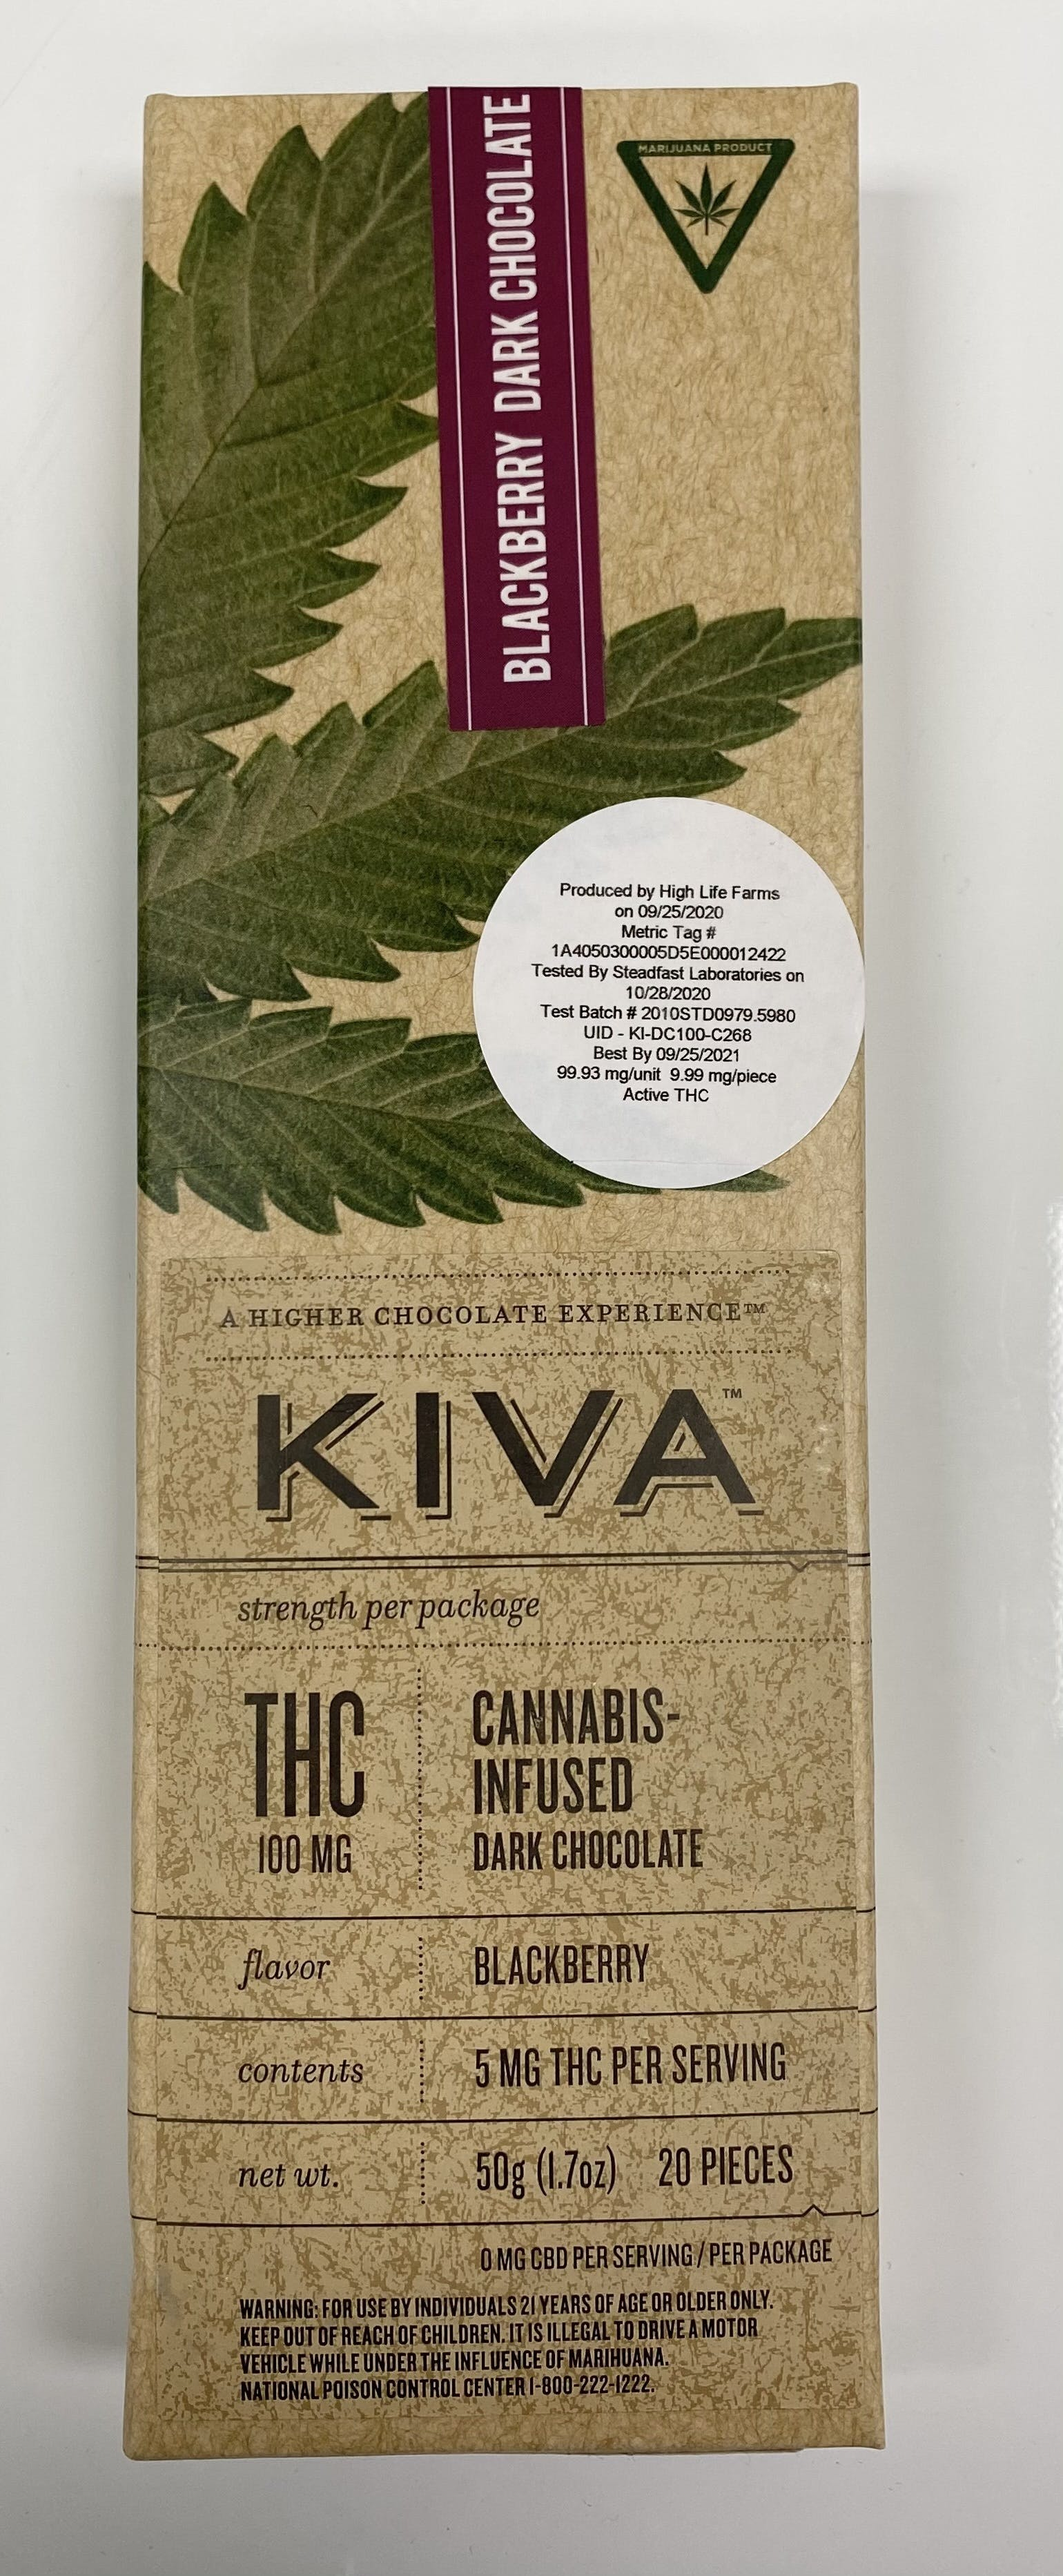 Kiva - HLF - Blackberry Dark Chocolate (100mg) (REC)